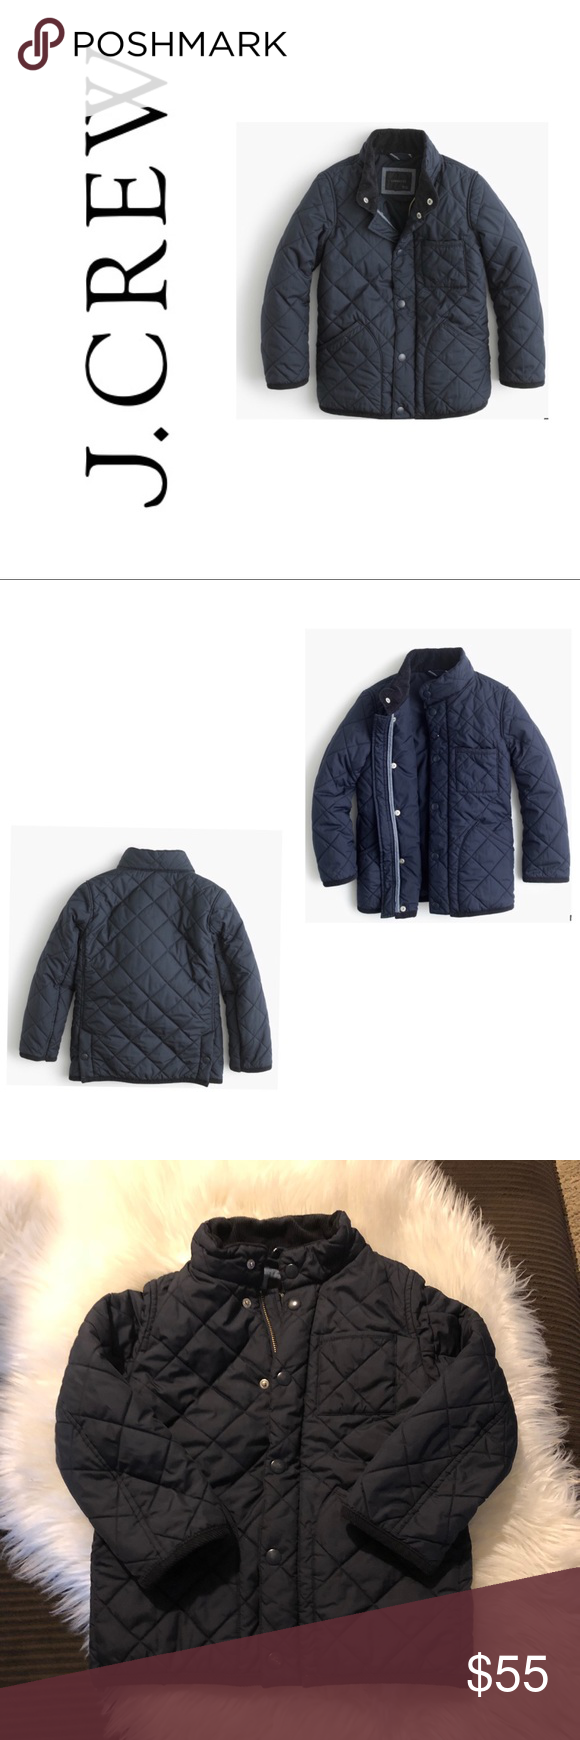 eb60b6080c6d Boys  Sussex quilted jacket